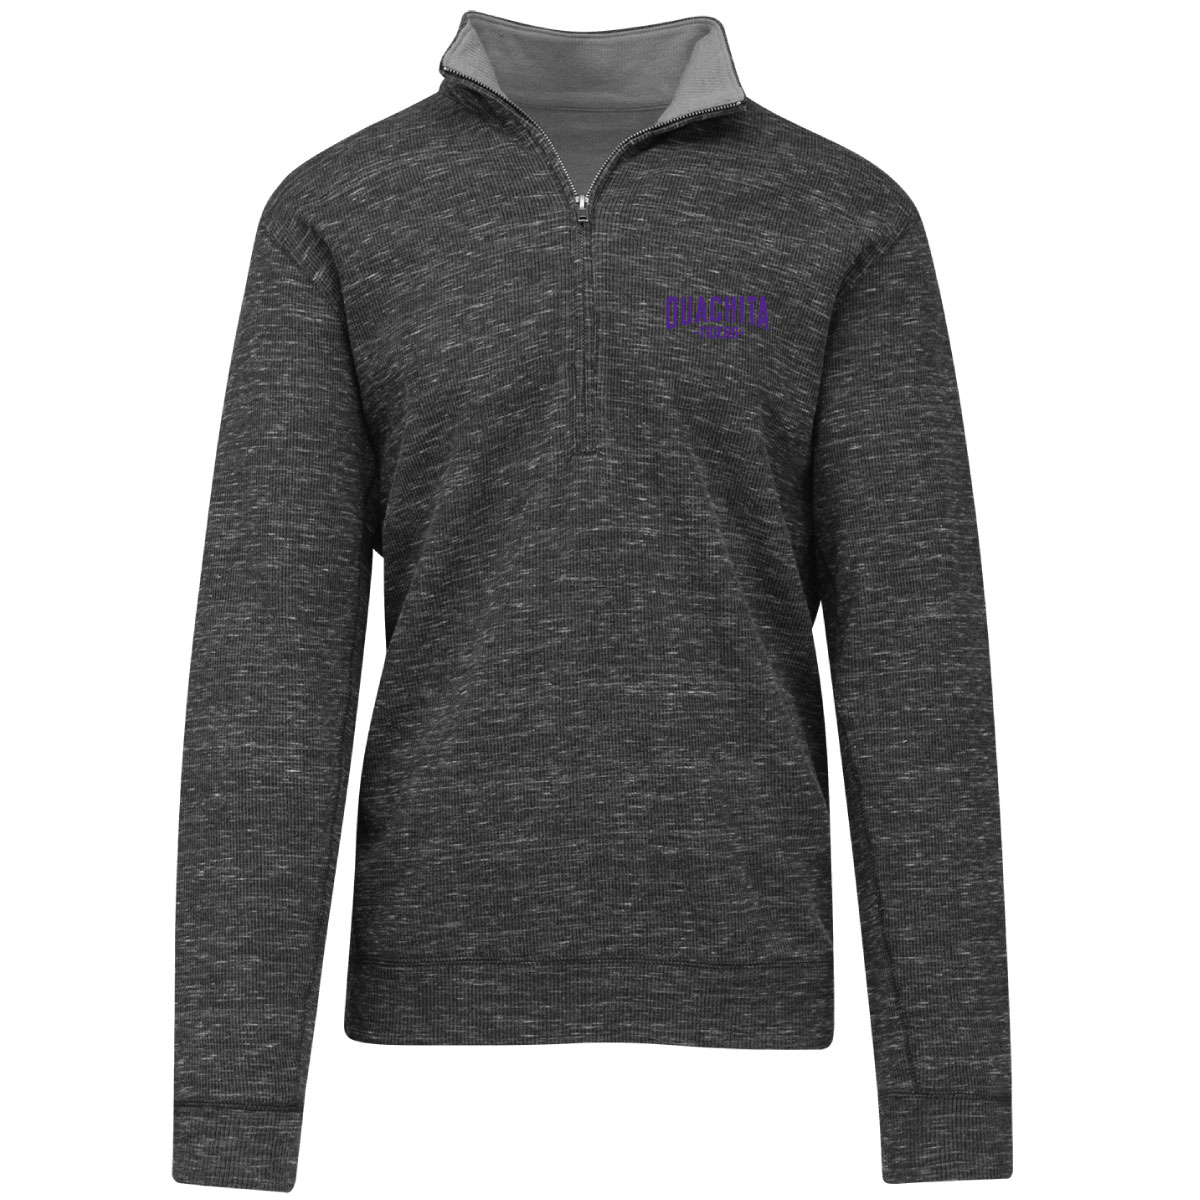 OUACHITA TIGERS 1/2 ZIP PULLOVER